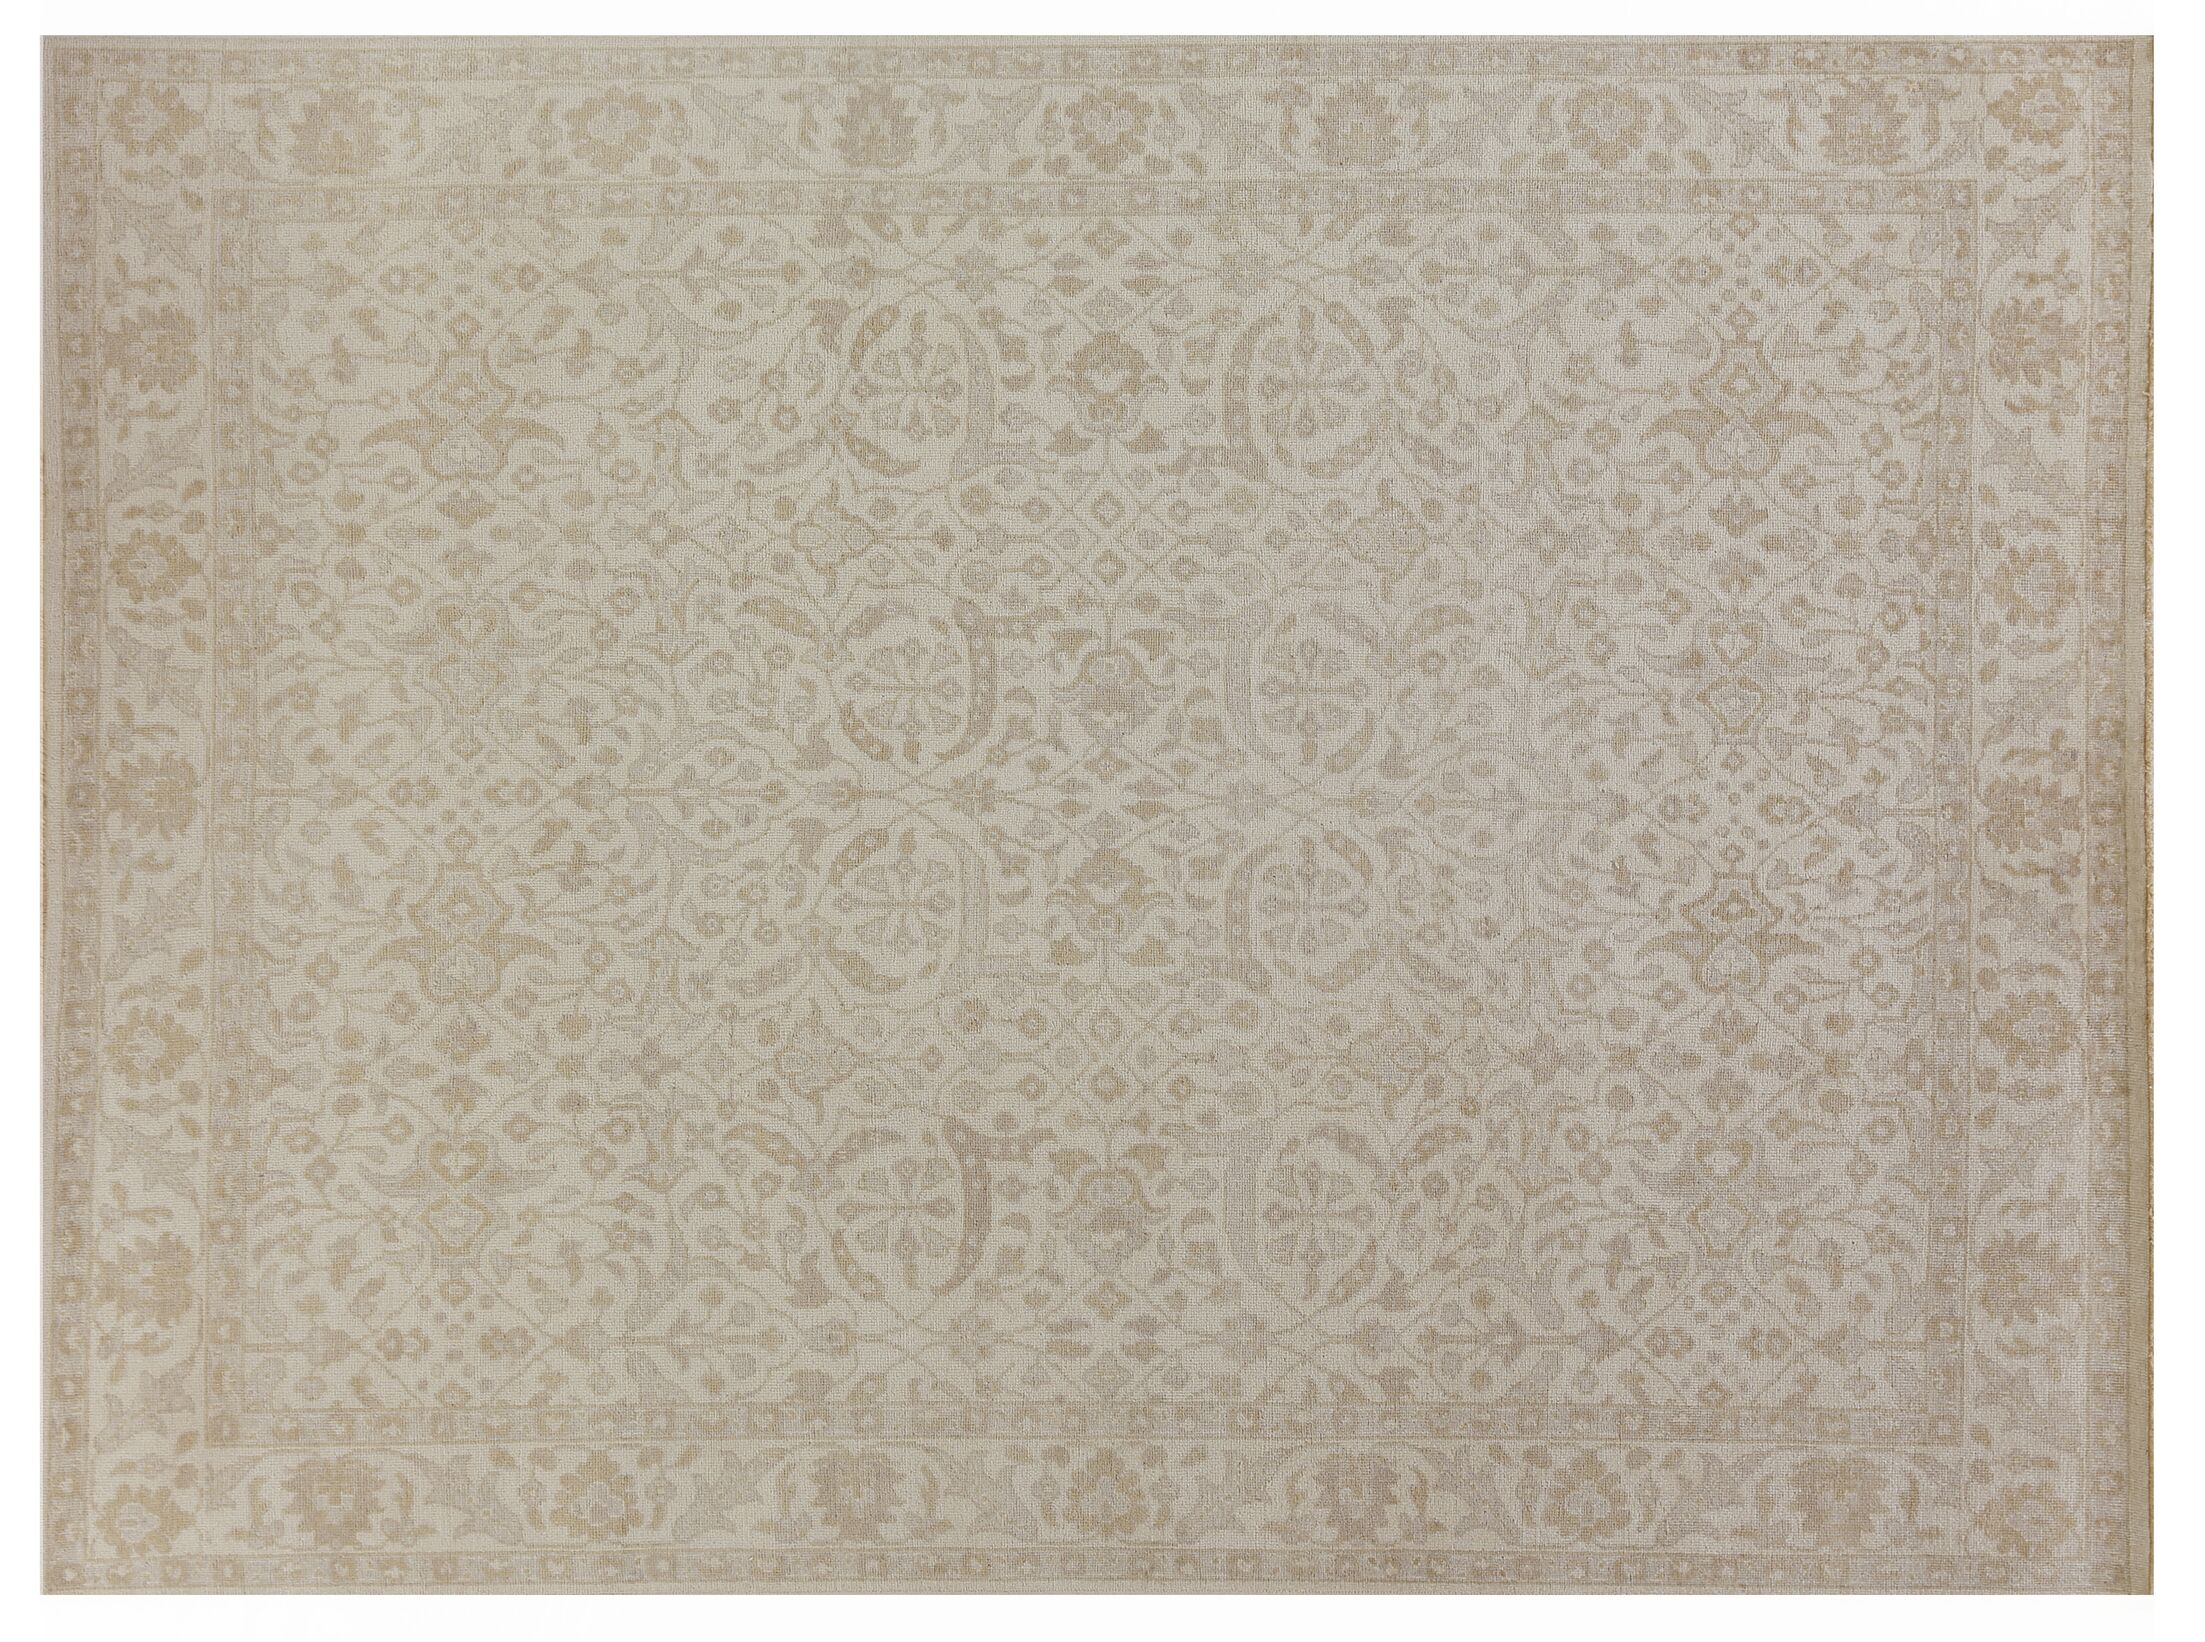 Restoration Hand-Knotted Wool Ivory Area Rug Rug Size: Rectangle6' x 9'